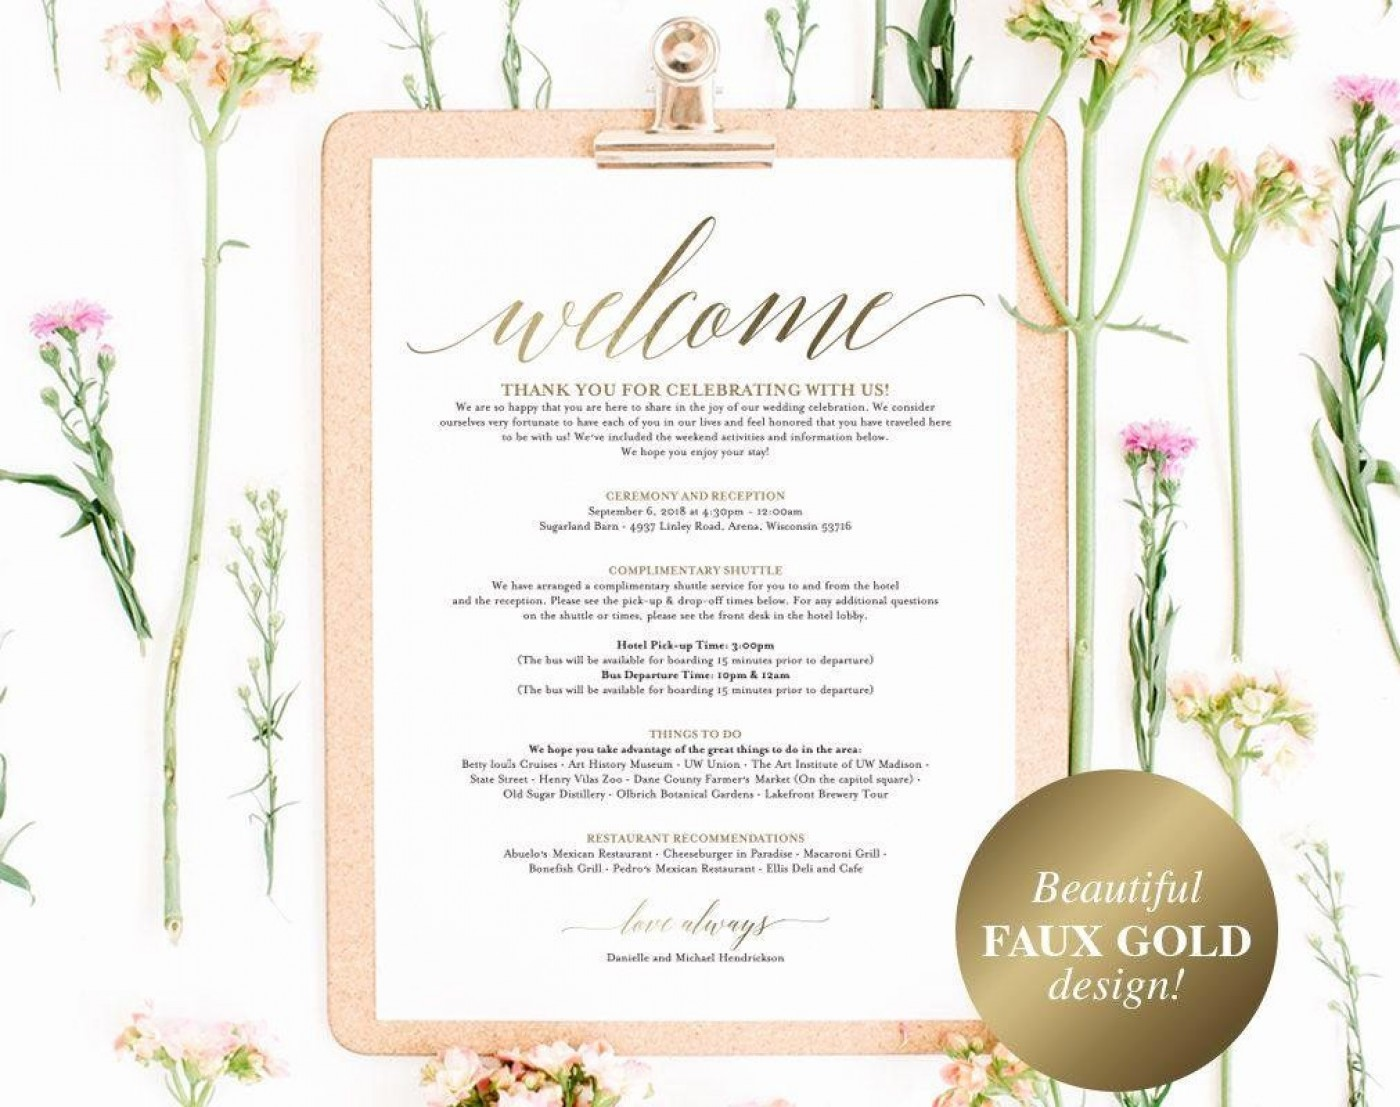 005 Unusual Wedding Hotel Welcome Letter Template Highest Clarity 1400